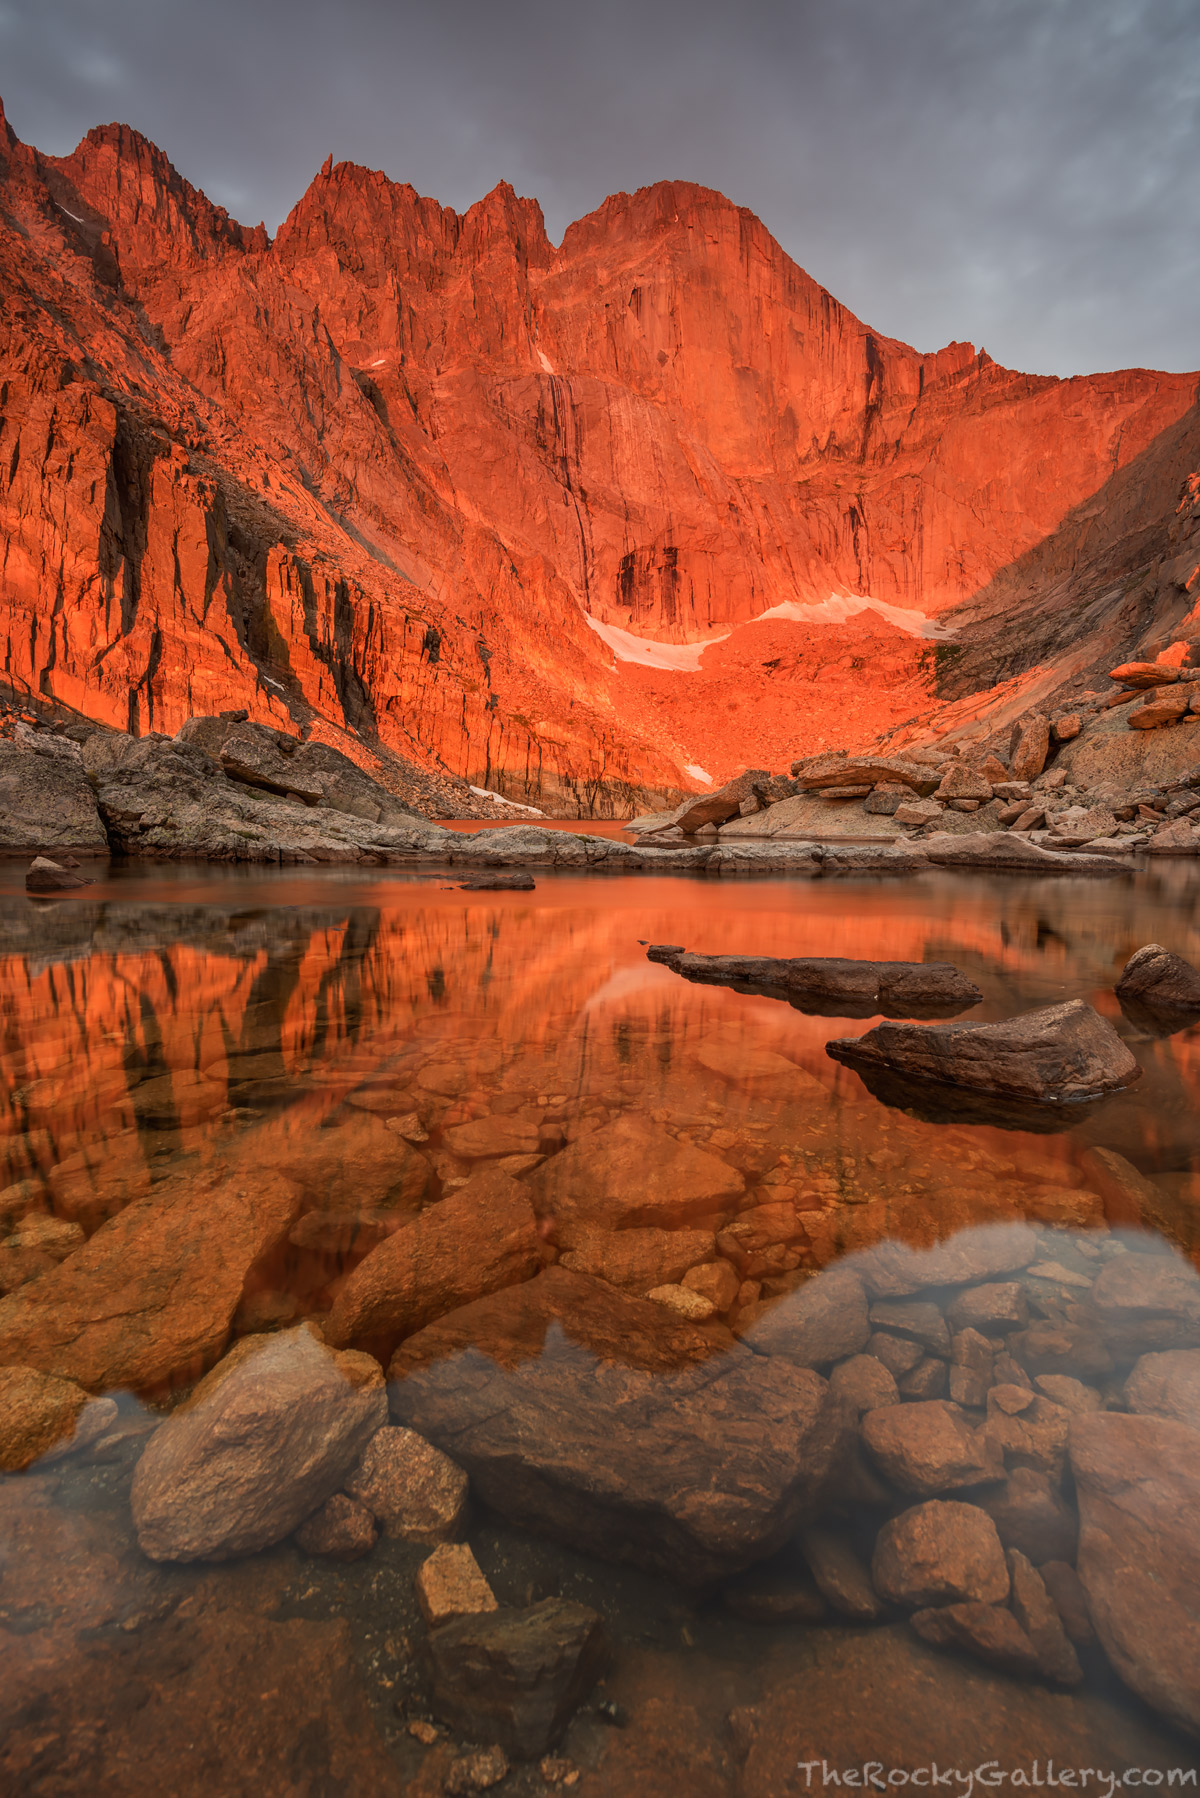 Longs Peak,14,259ft,14er,Chasm Lake,sunrise,landscape,photography,RMNP,Rocky Mountain National Park,Colorado,The Diamond,Longs Peak Trailhead,Estes Park,icon , photo